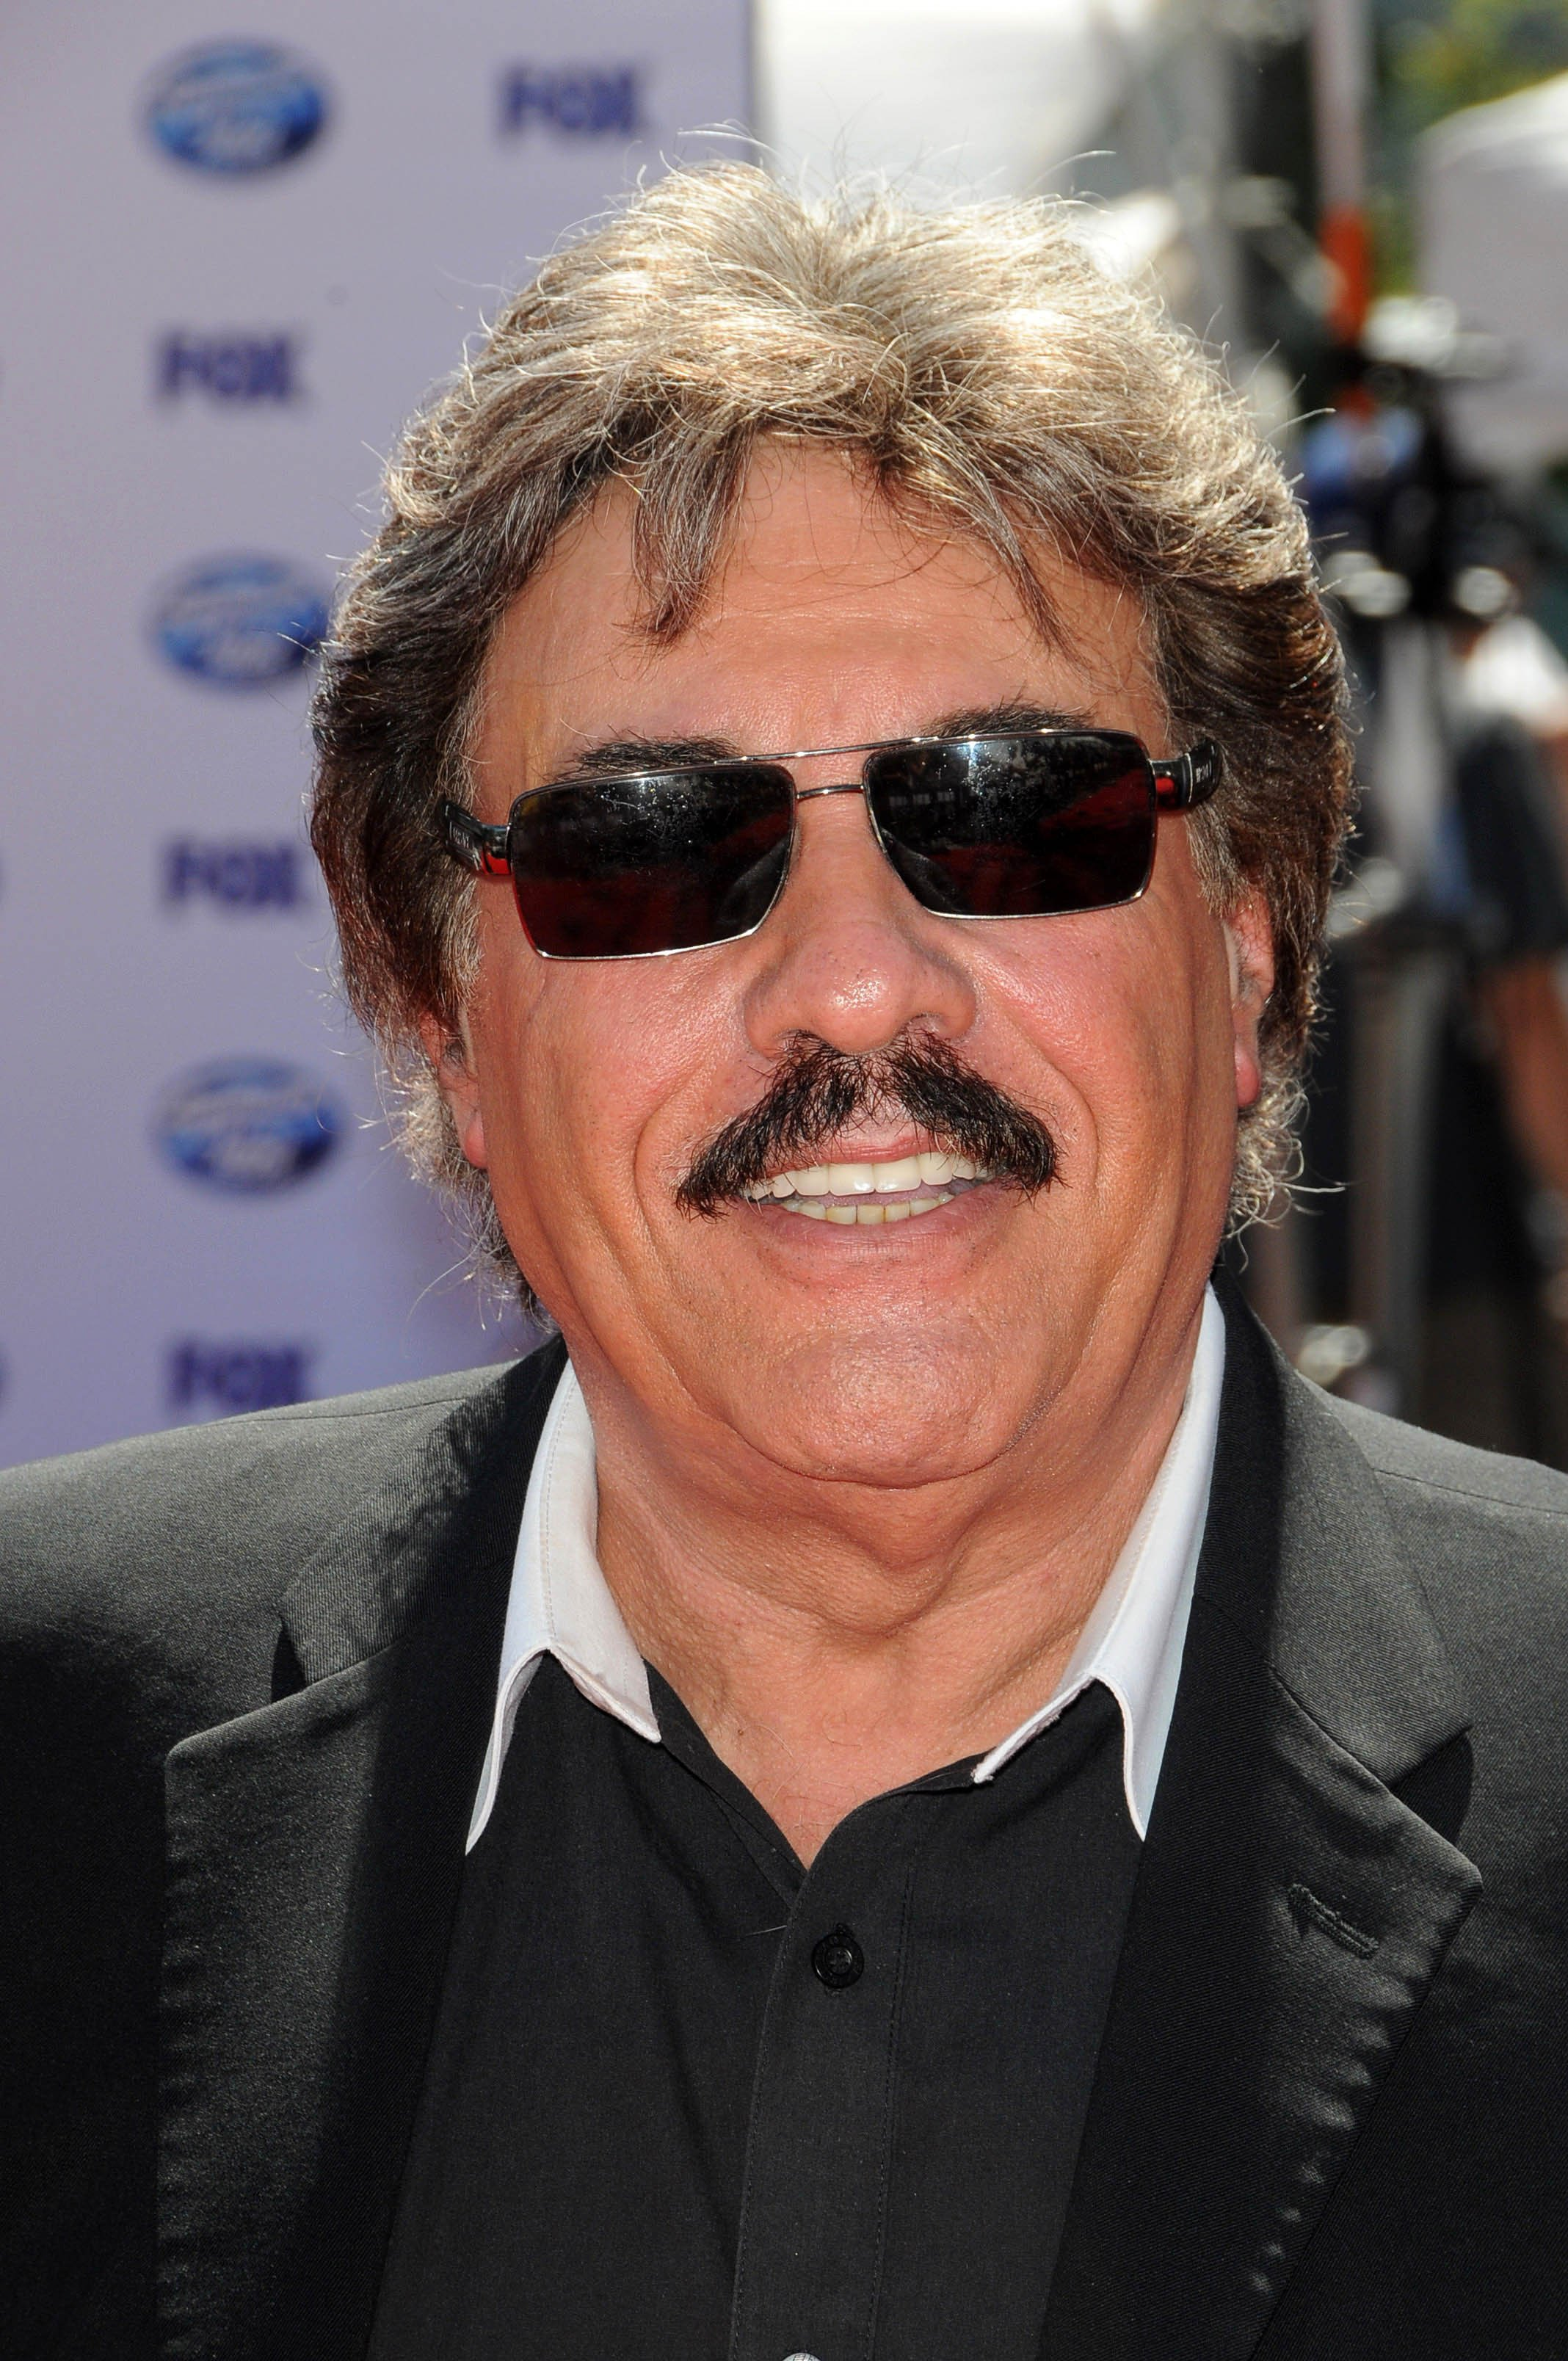 Tony Orlando at the American Idol Grand Finale 2010, Nokia Theater, on May 26, 2010, Los Angeles, California | Photo: Shutterstock